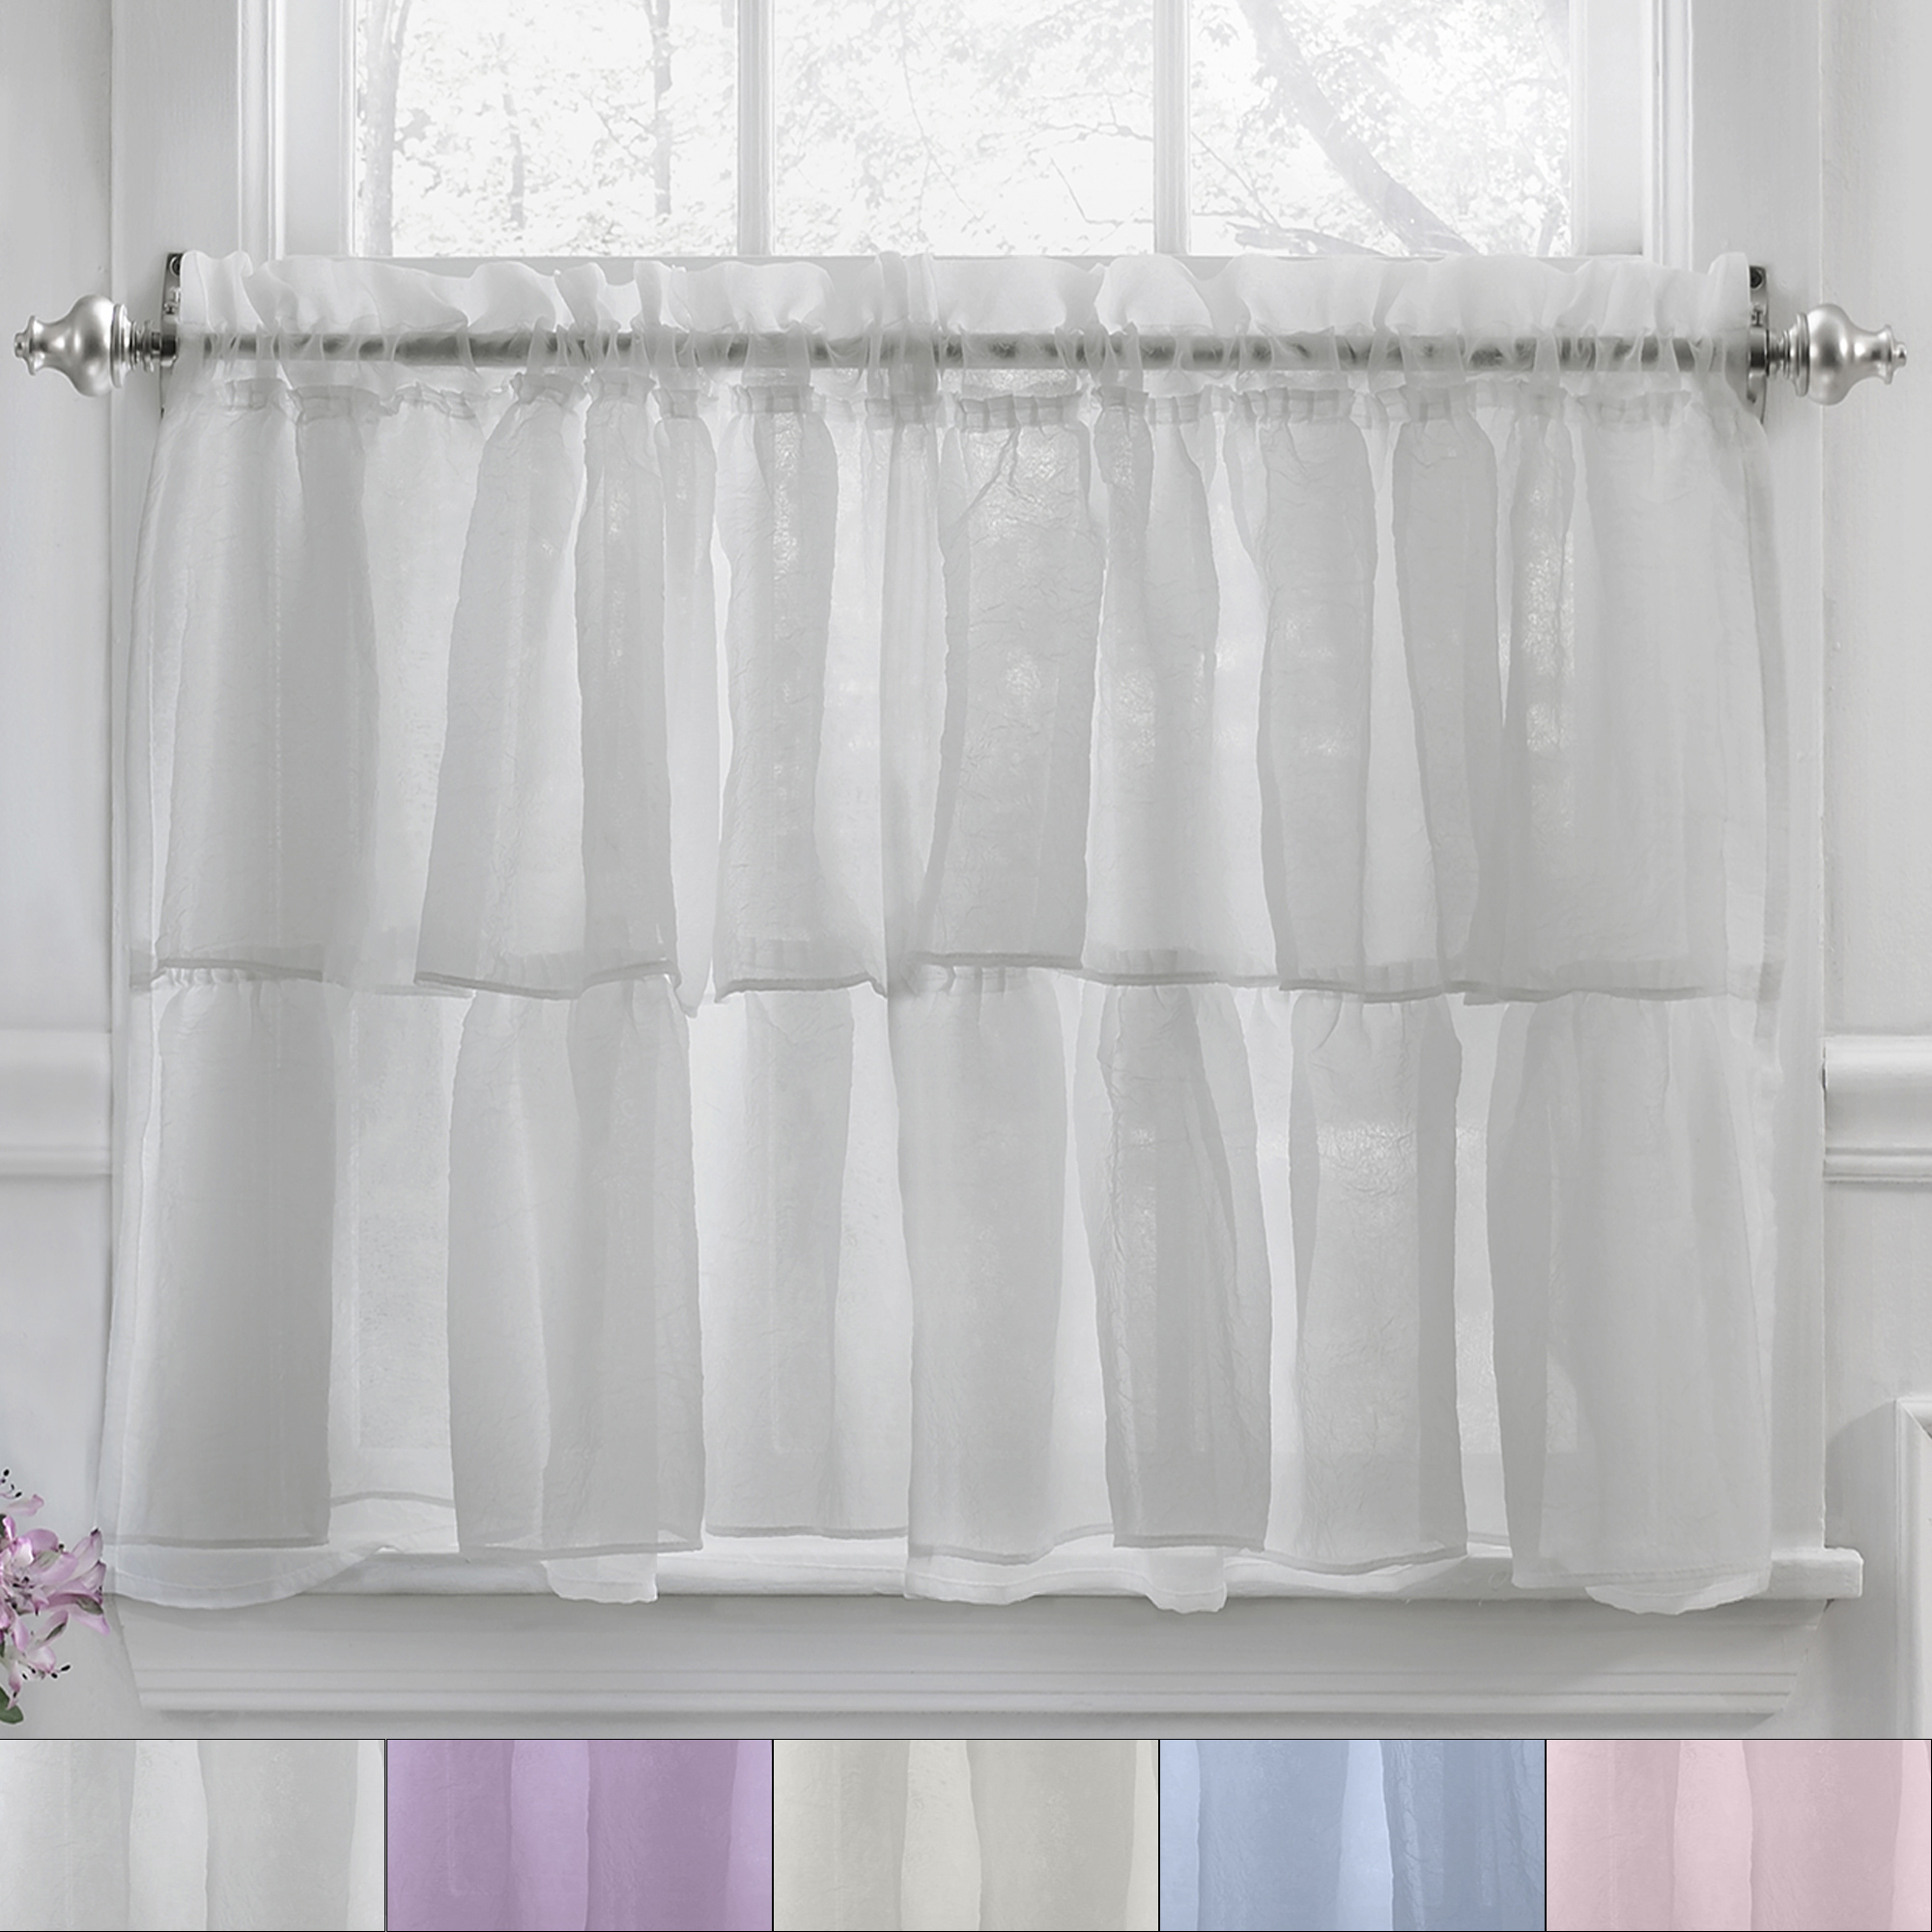 """Details About Gypsy Crushed Voile Ruffle Kitchen Window Curtain 36"""" Tier Pair Pertaining To Elegant Crushed Voile Ruffle Window Curtain Pieces (View 2 of 20)"""